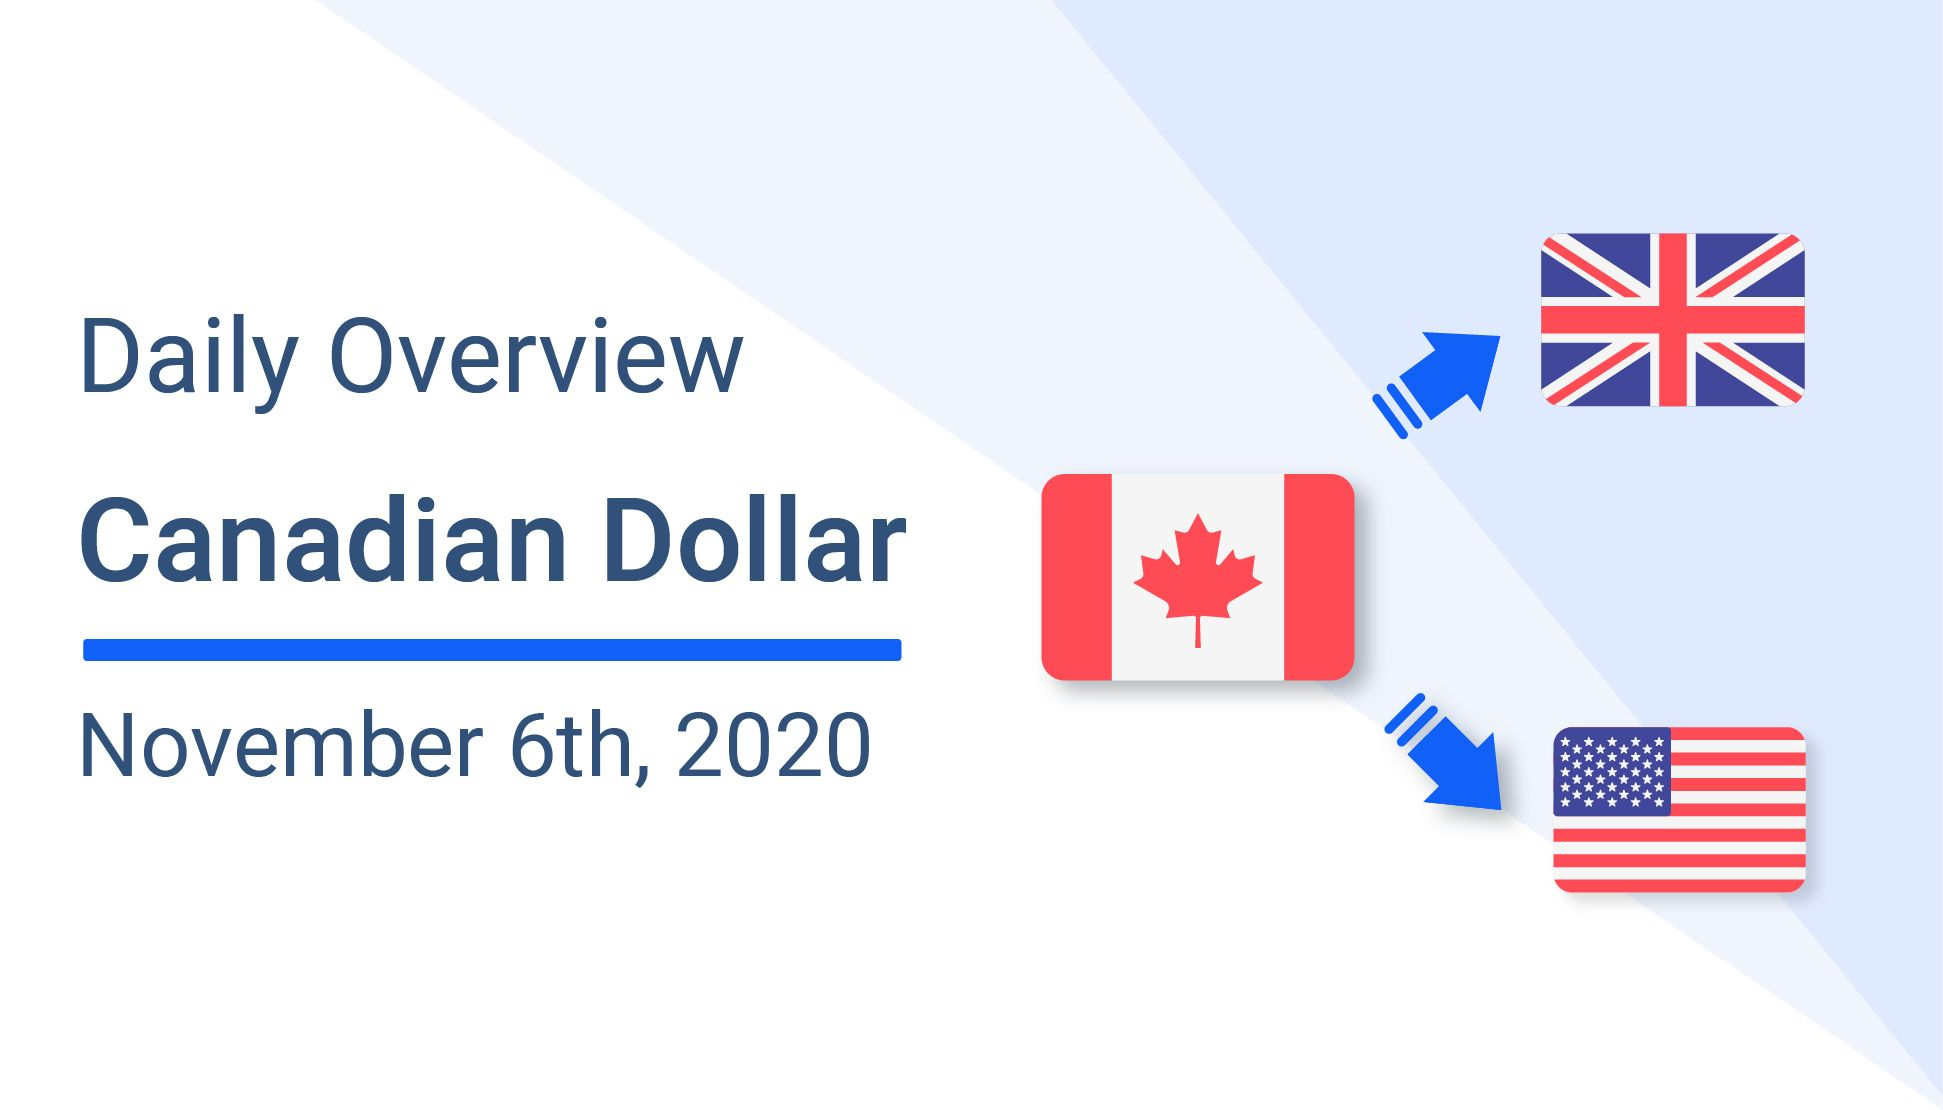 GBP-CAD-USD Daily Overview: November 6th